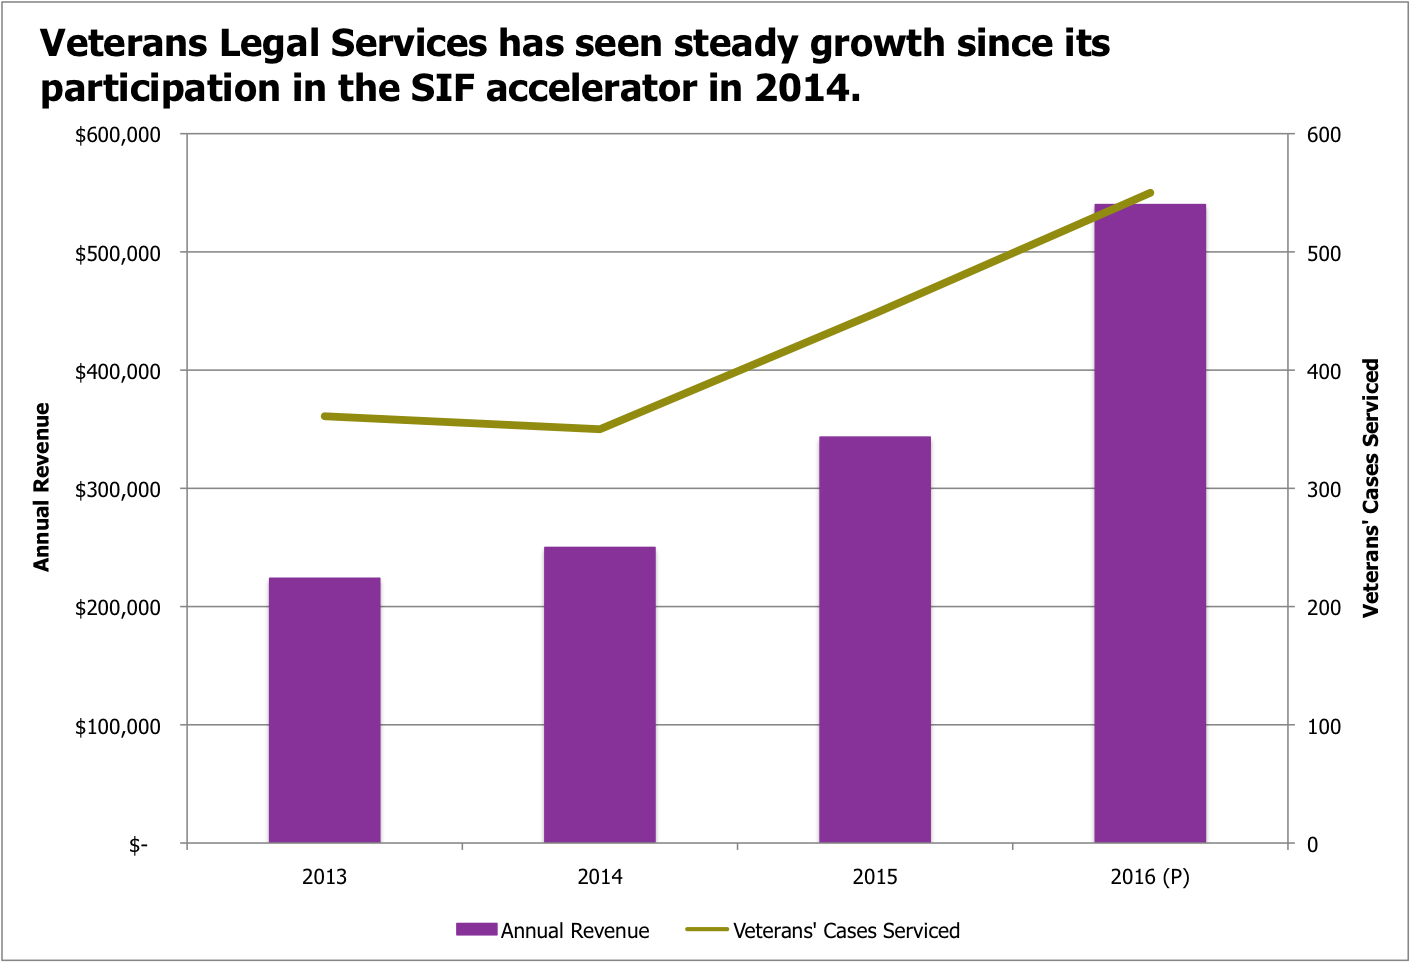 Veterans' Legal Services Growth Graph